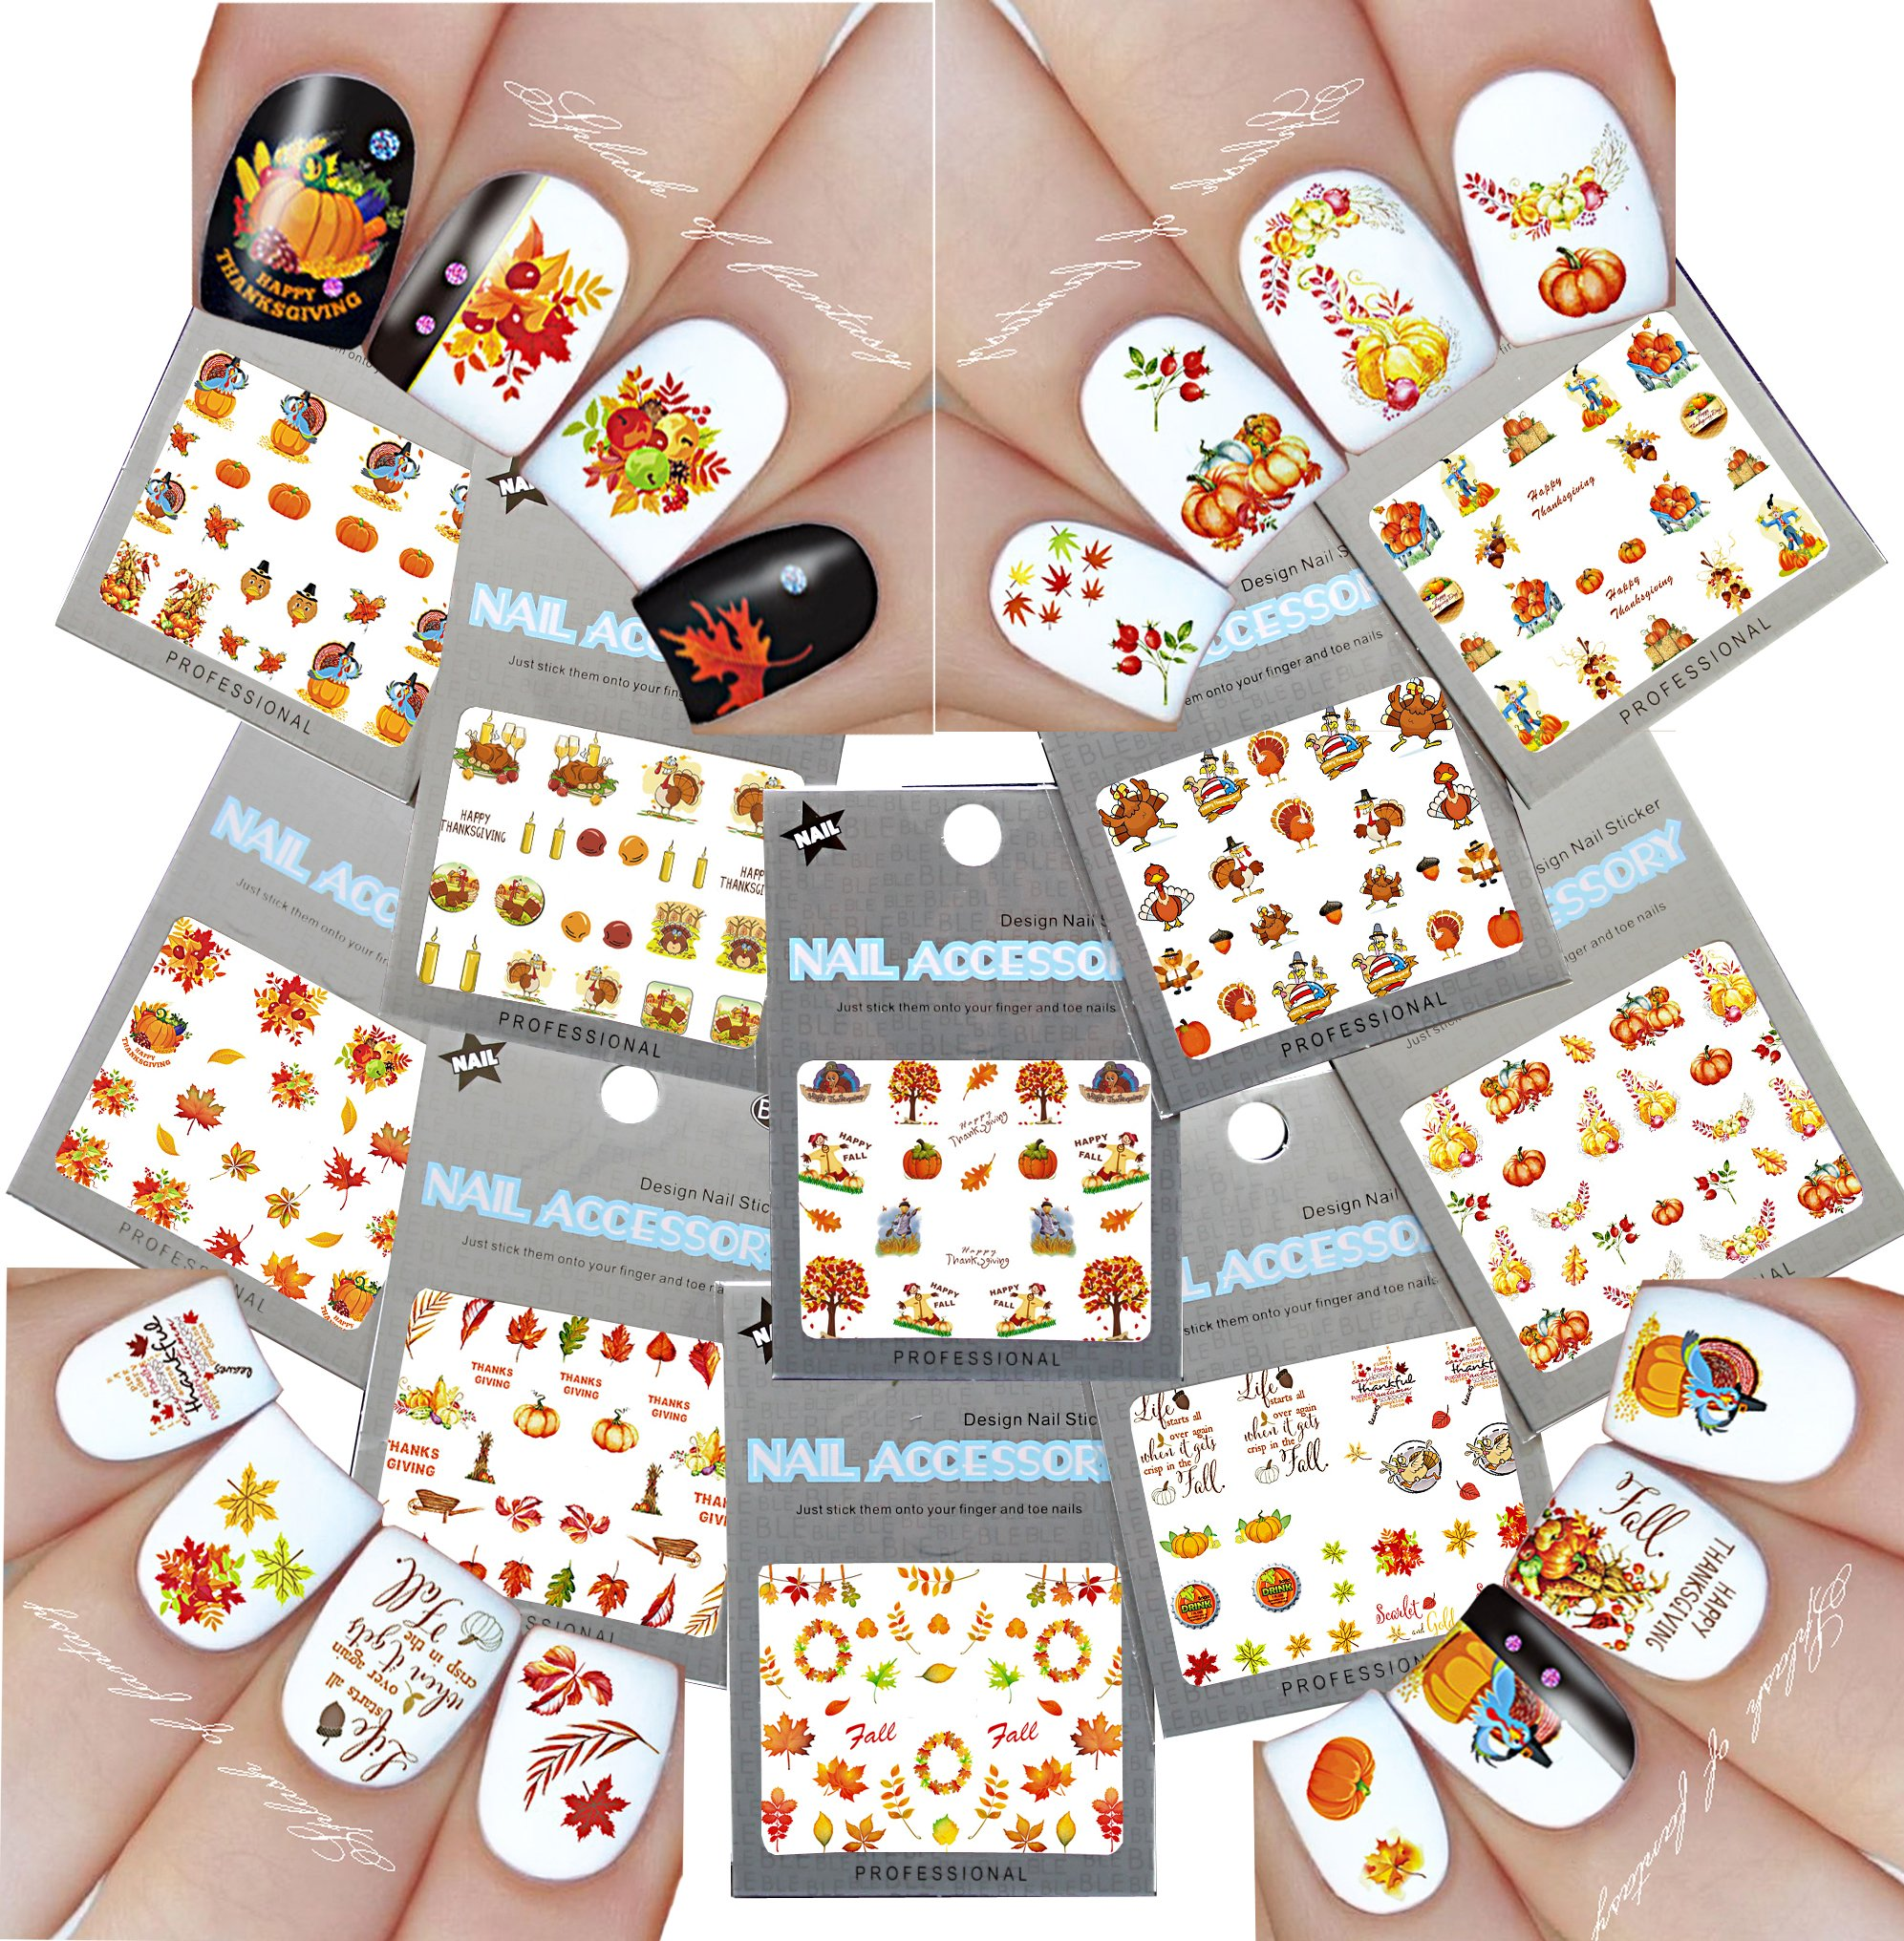 Nail Art Water Slide Tattoo Decals ♥ Fall Into Fun Thanksgiving Theme - 10 Pack by La Demoiselle